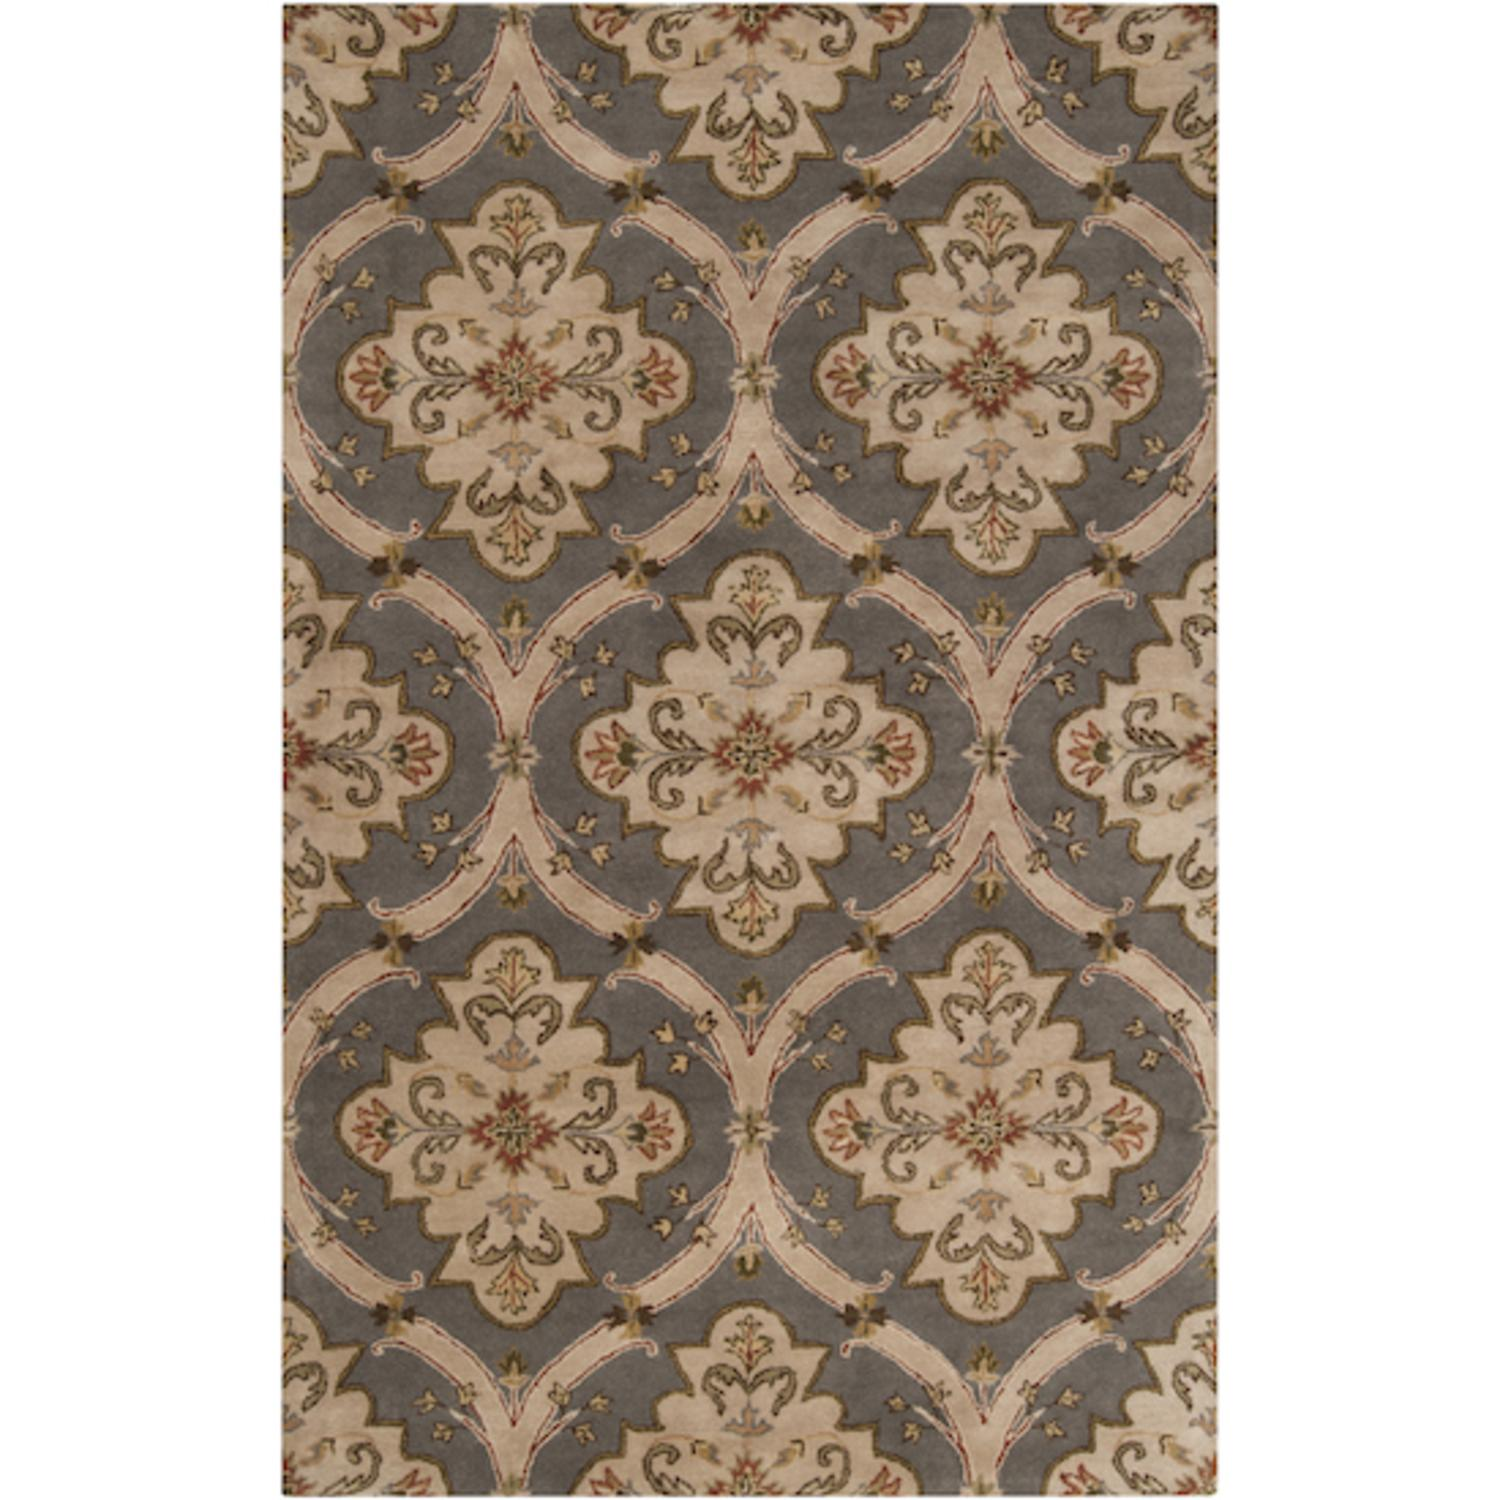 3' x 12' Dahlia Pinnata Elephant Gray and Dark Khaki Wool Area Runner Throw Rug